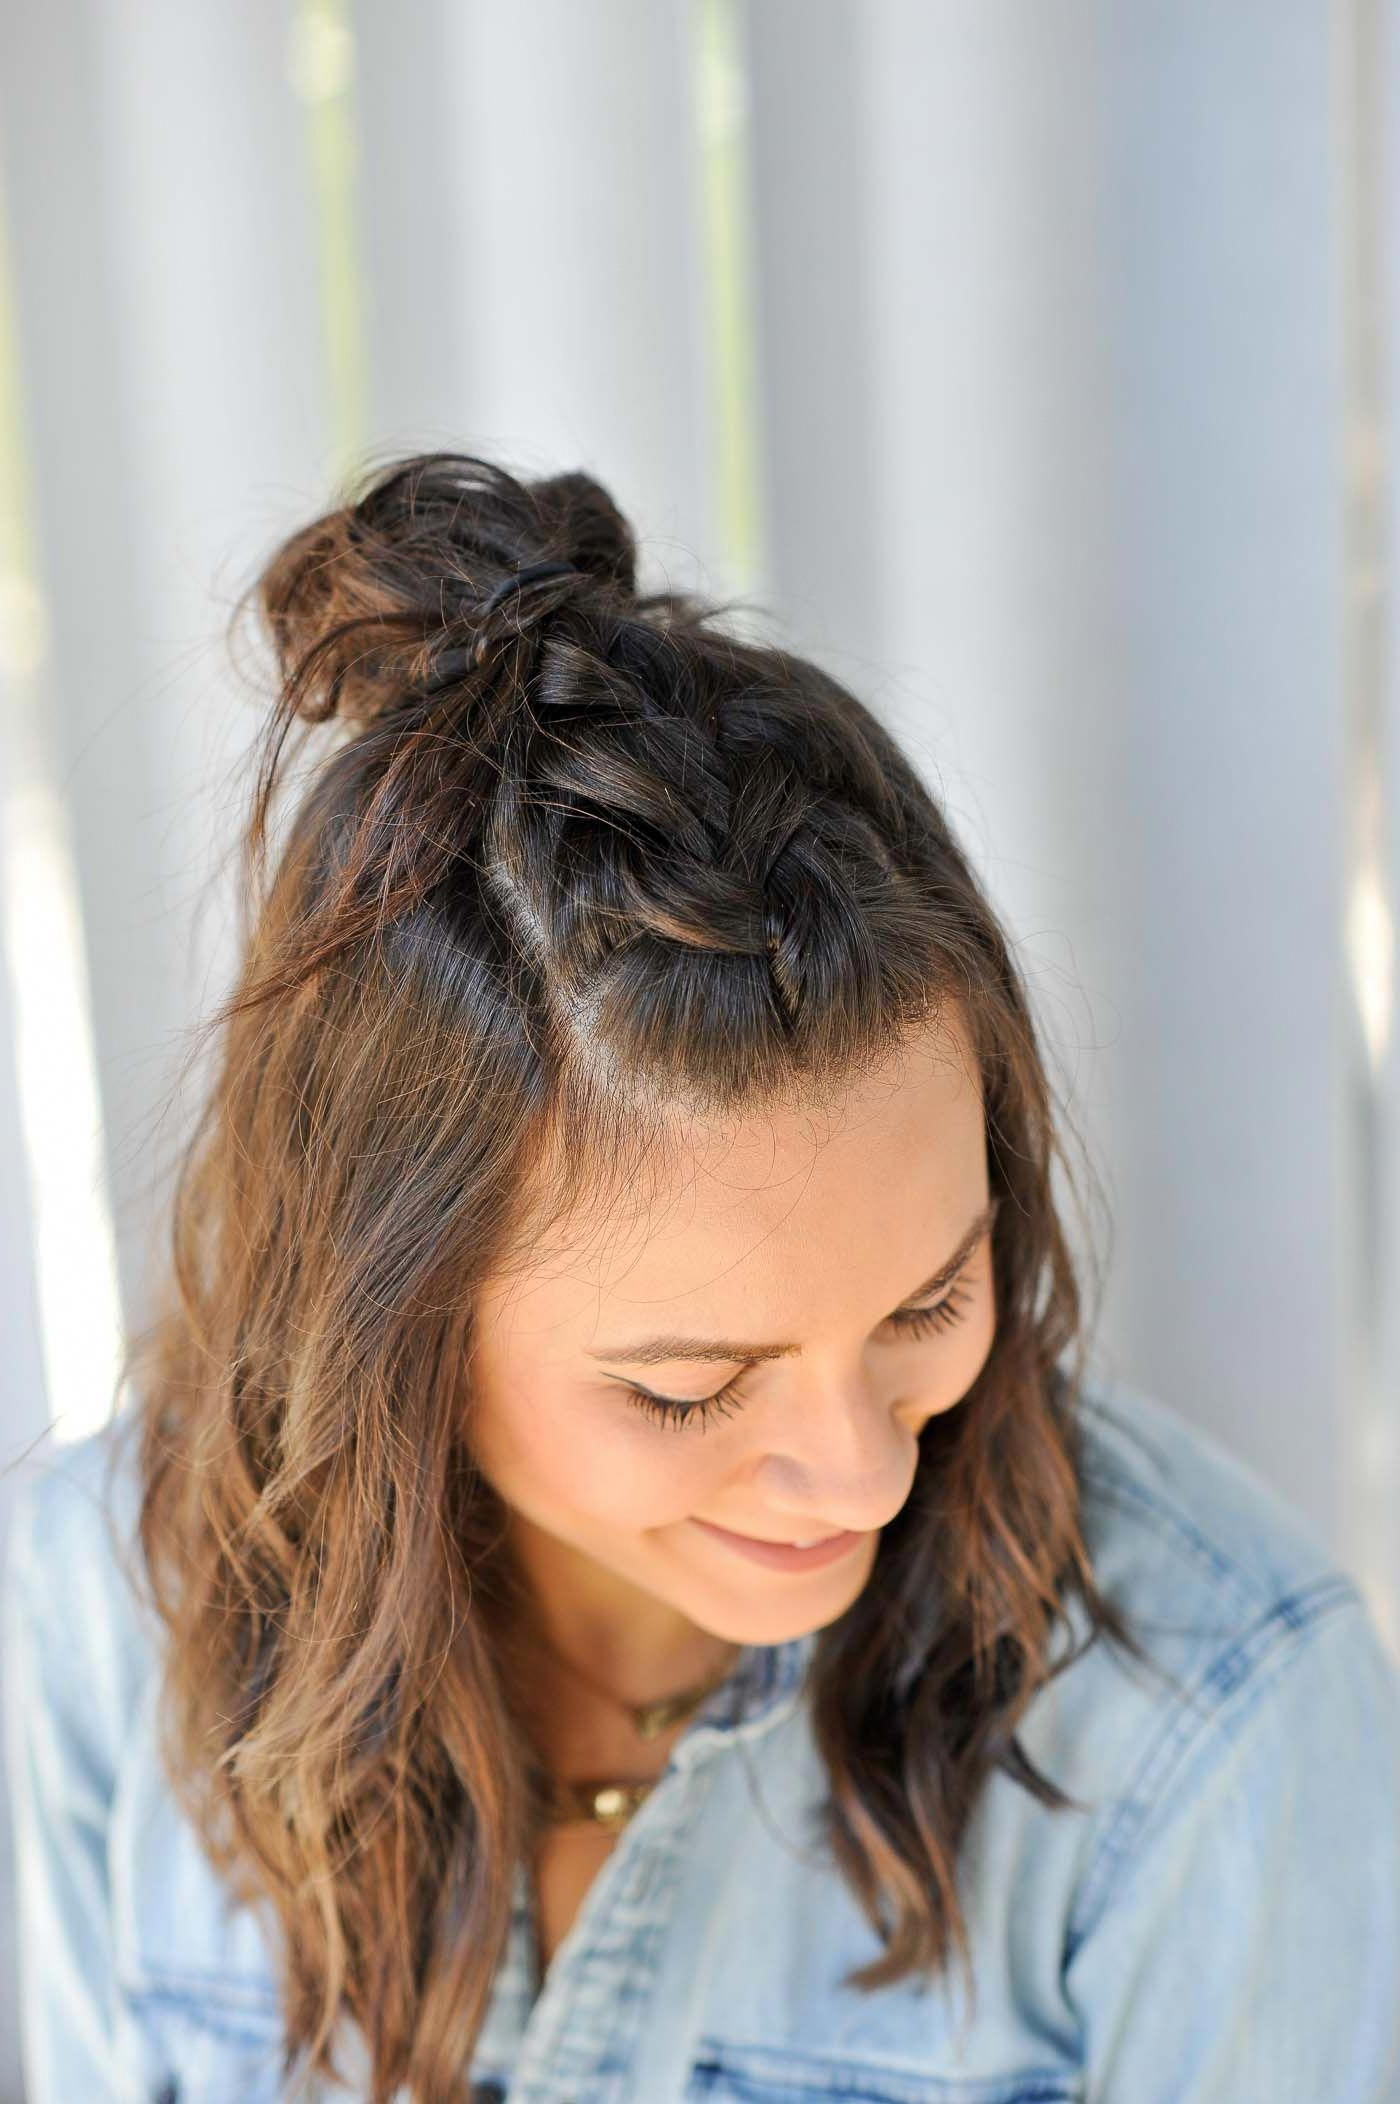 Braided Half Up Half Down Hairstyle, How To Do A Top Knot Inside Famous Half Braided Hairstyles (View 2 of 20)